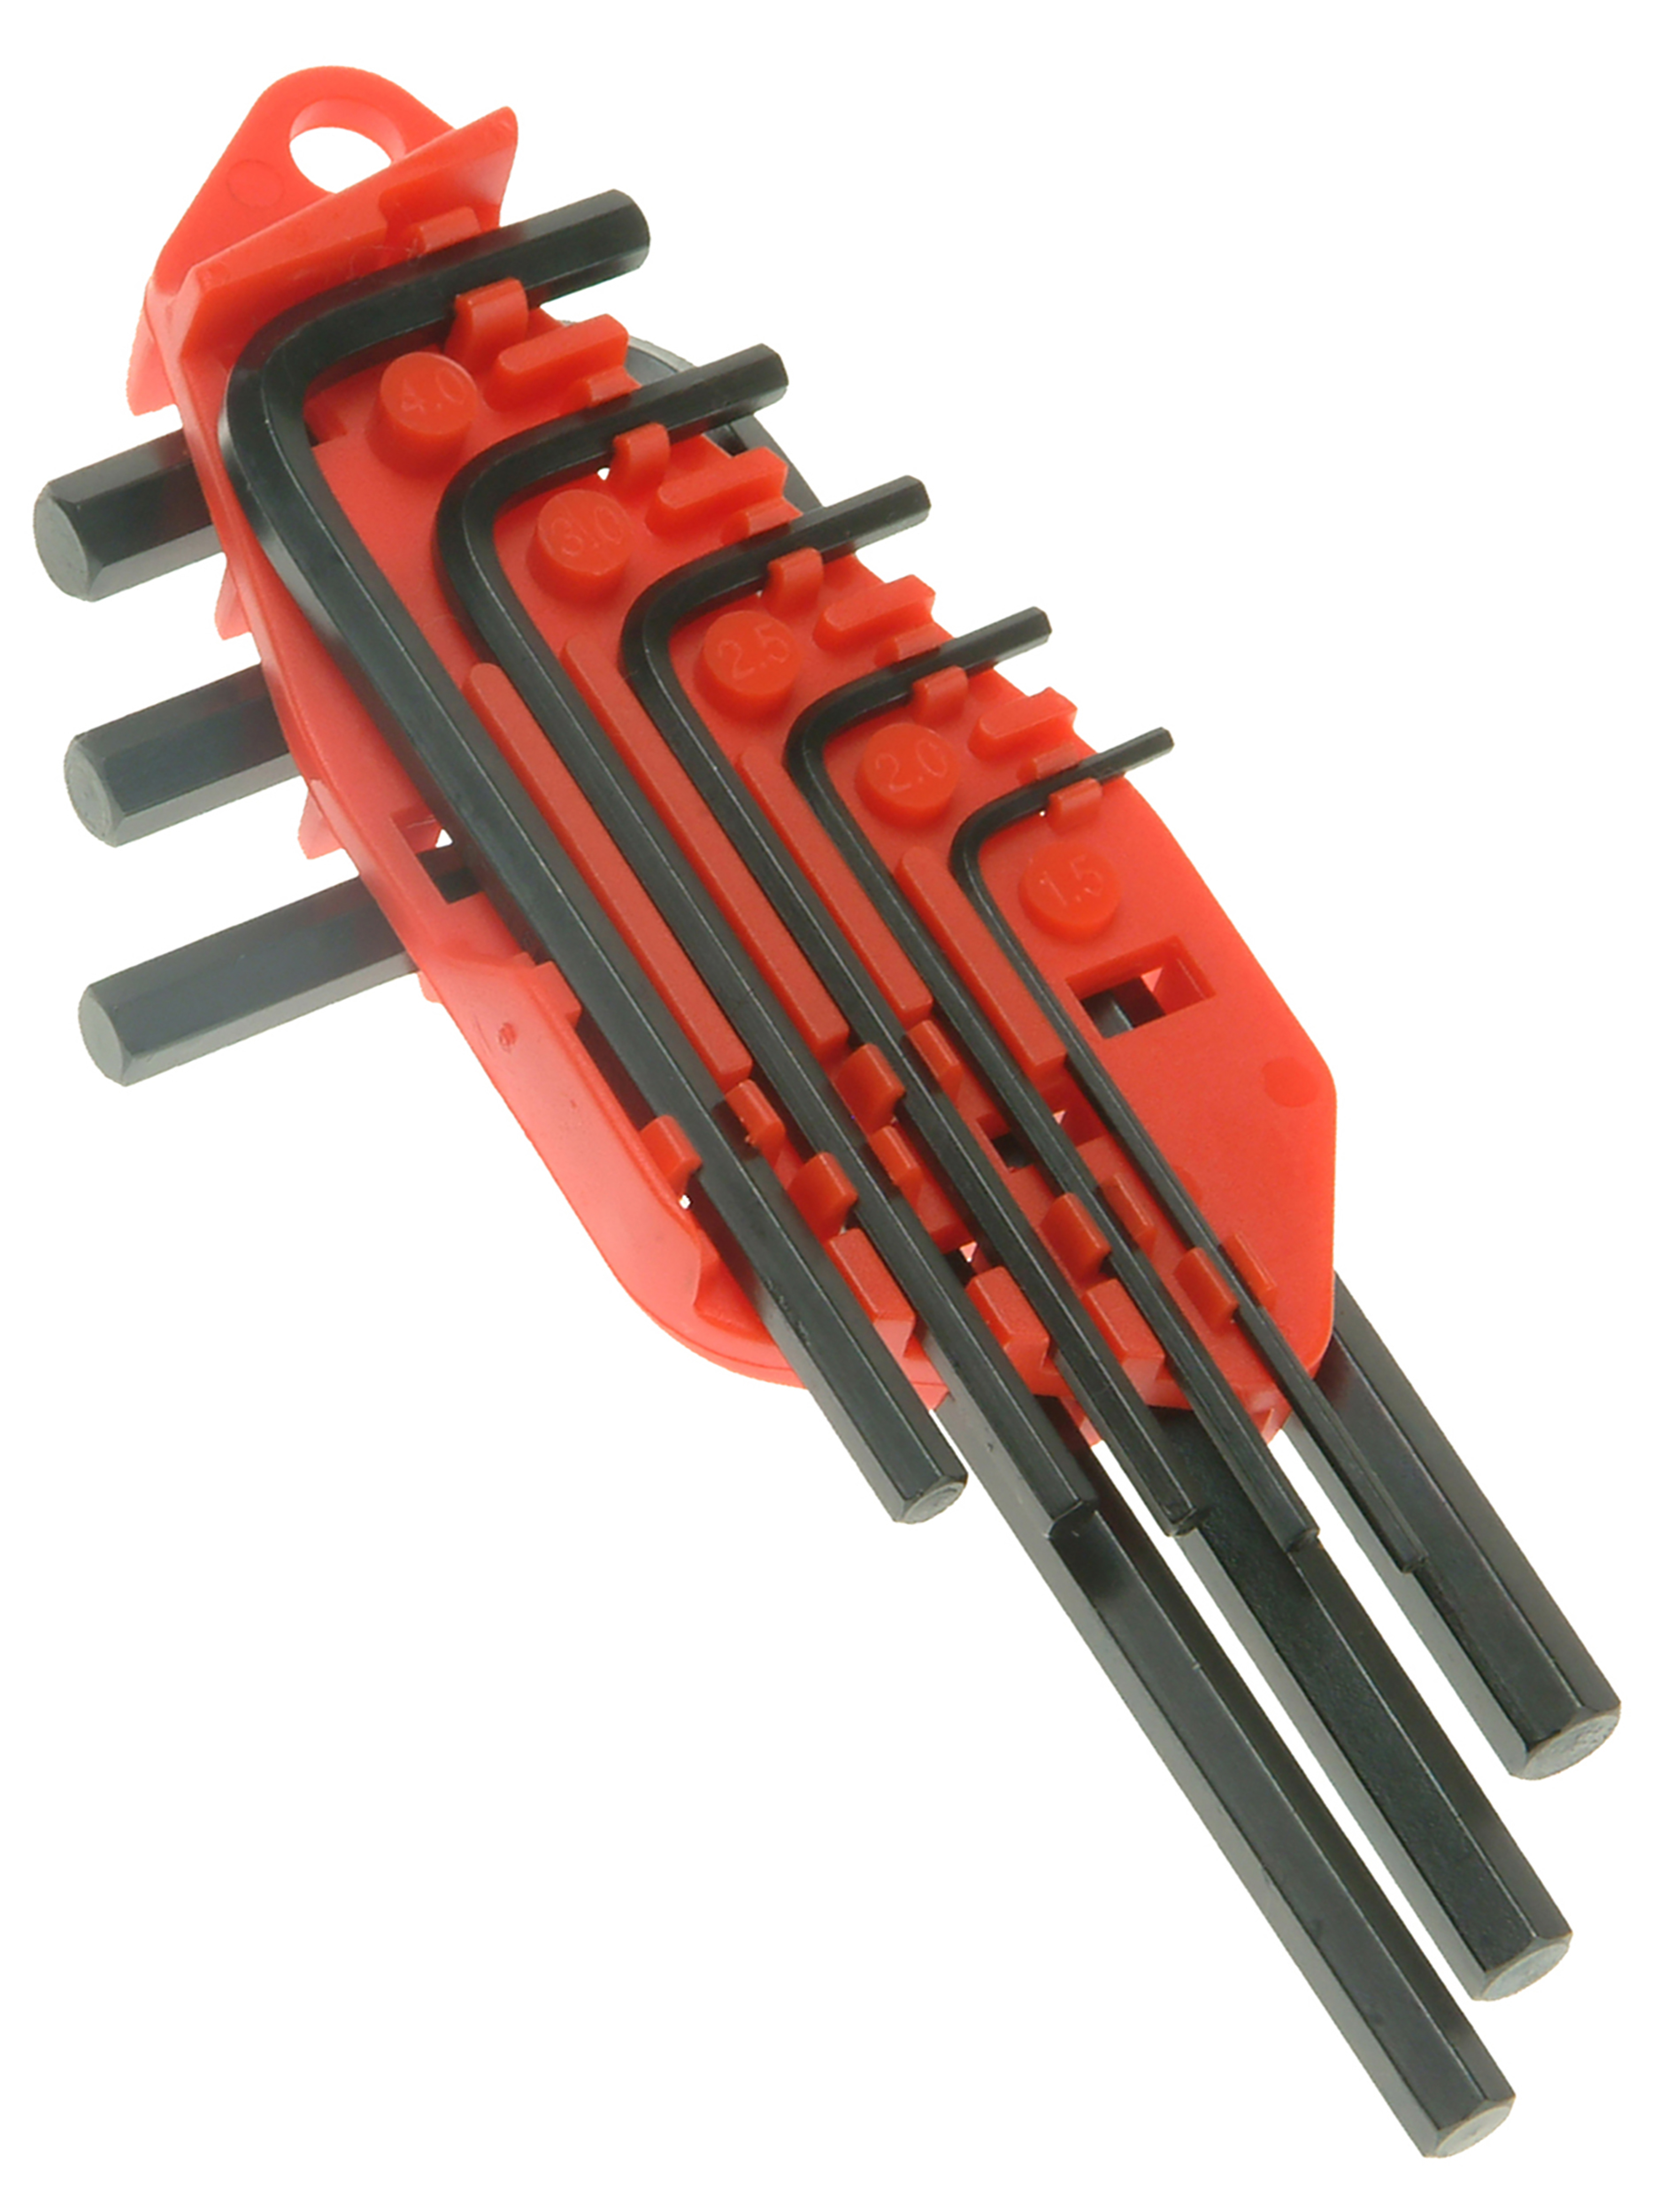 Imperial Stanley 269265 Folding Hex Key Set 9 Pieces